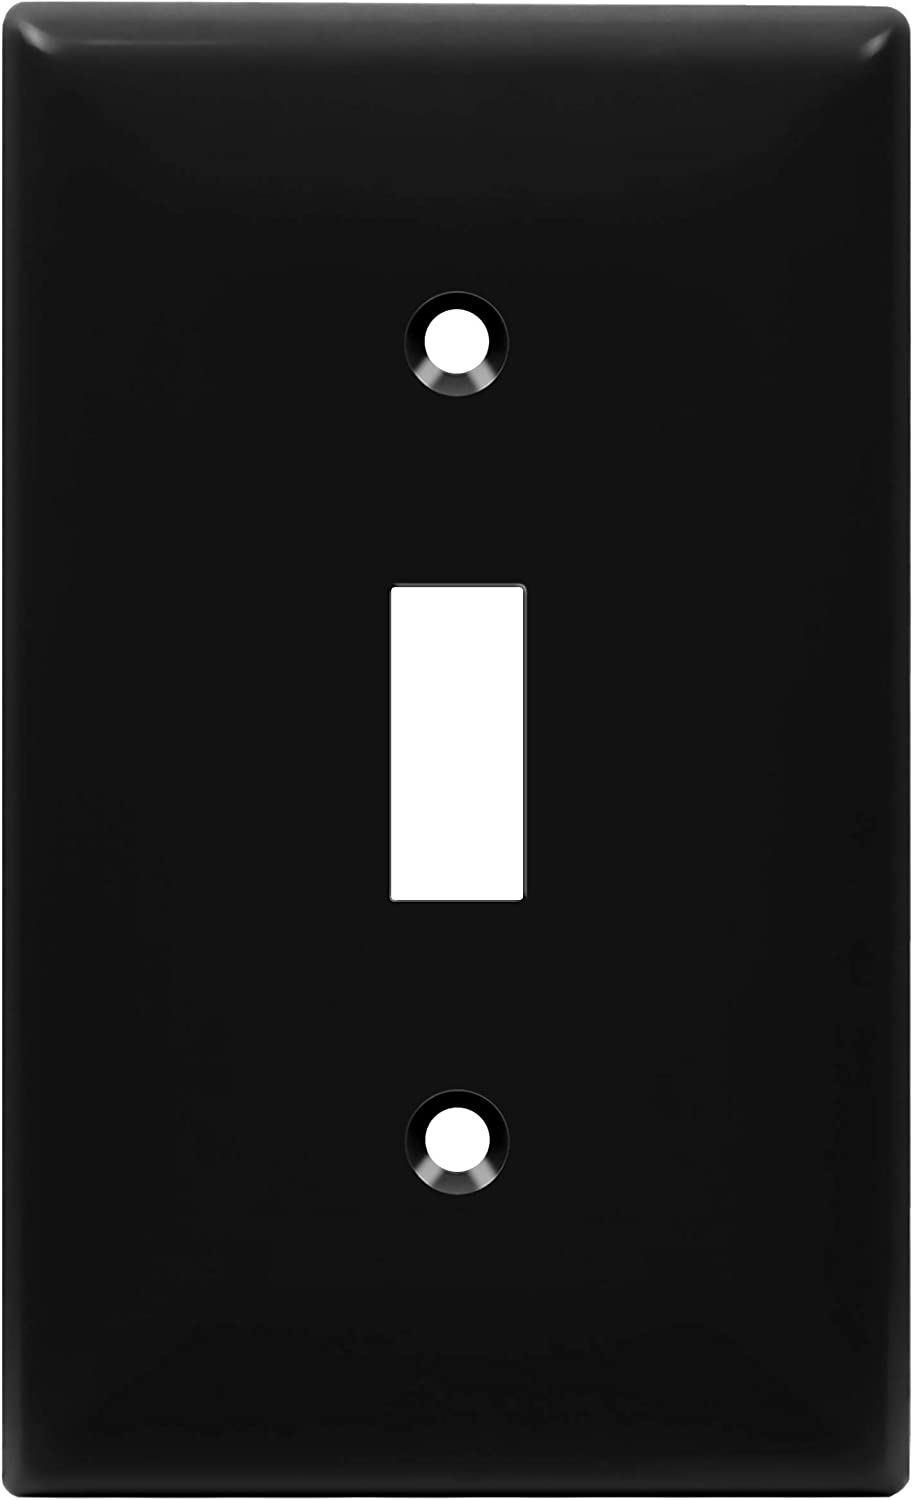 Enerlites Toggle Light Switch Wall Plate Standard Size 1 Gang 4 50 X 2 76 Unbreakable Polycarbonate Thermoplastic 8811 Bk Black